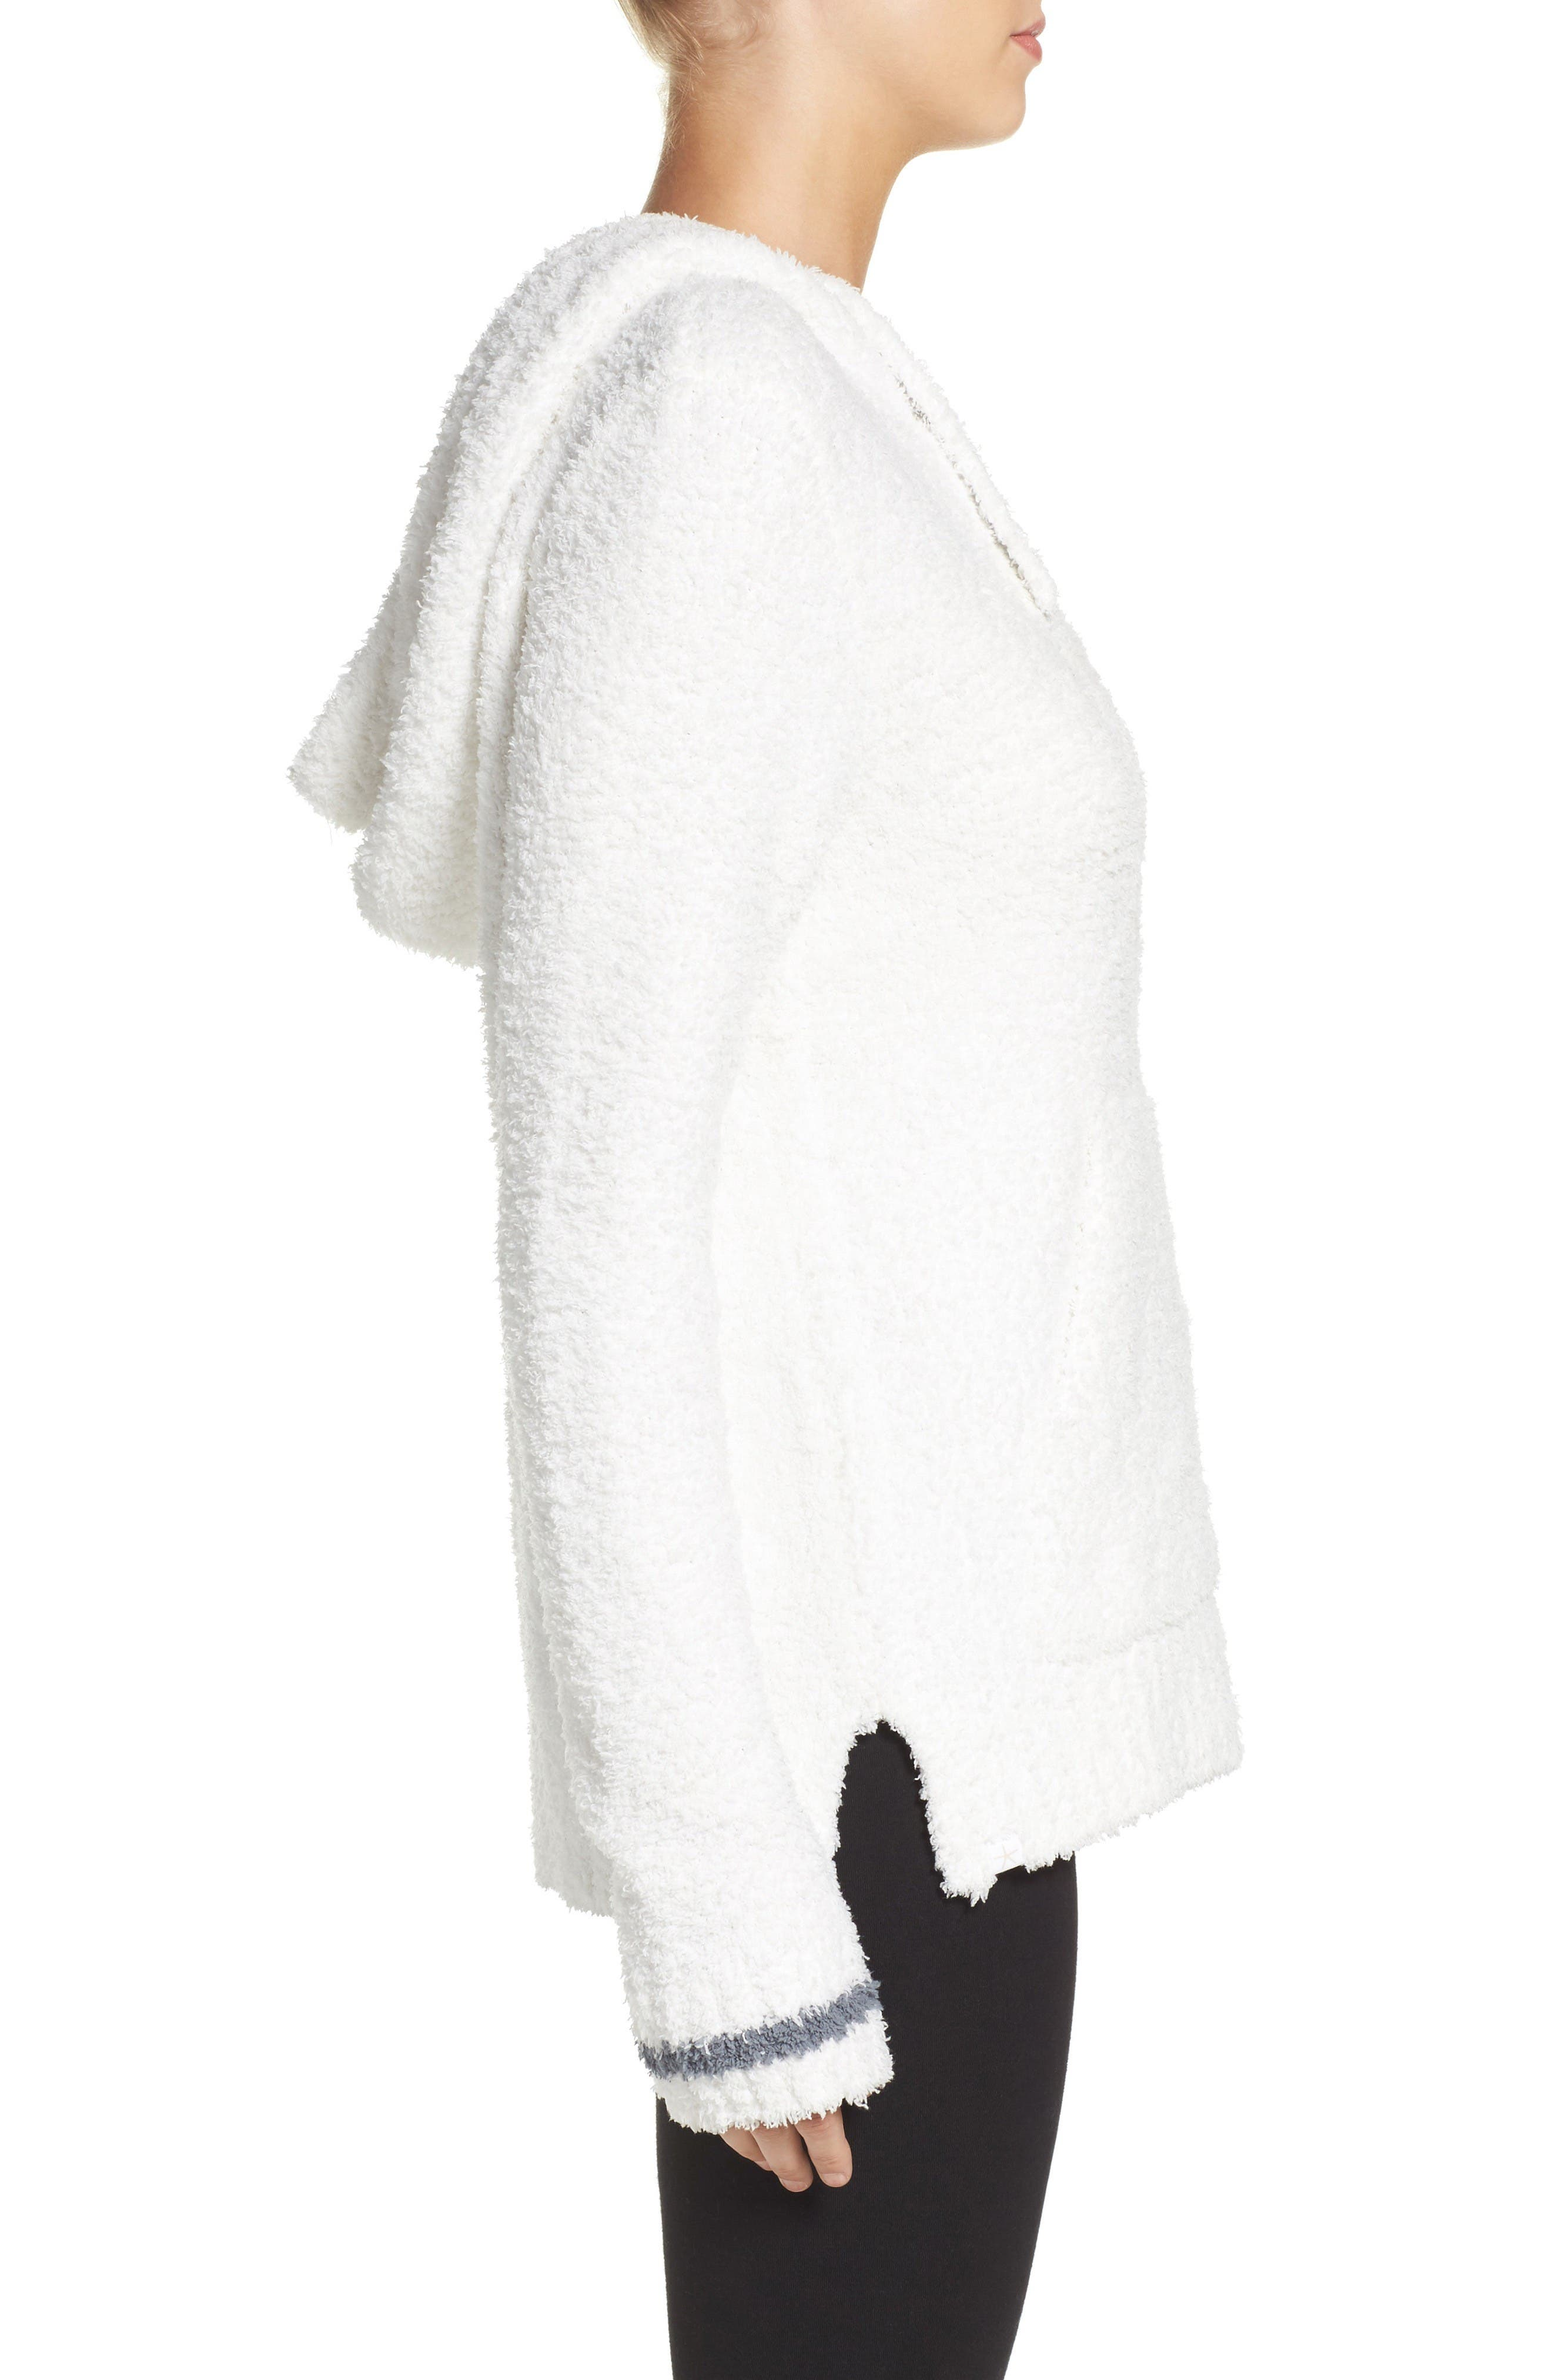 Barefoot Dreams Cozychic<sup>®</sup> Baha Lounge Hoodie,                             Alternate thumbnail 3, color,                             White/ Graphite Stripe